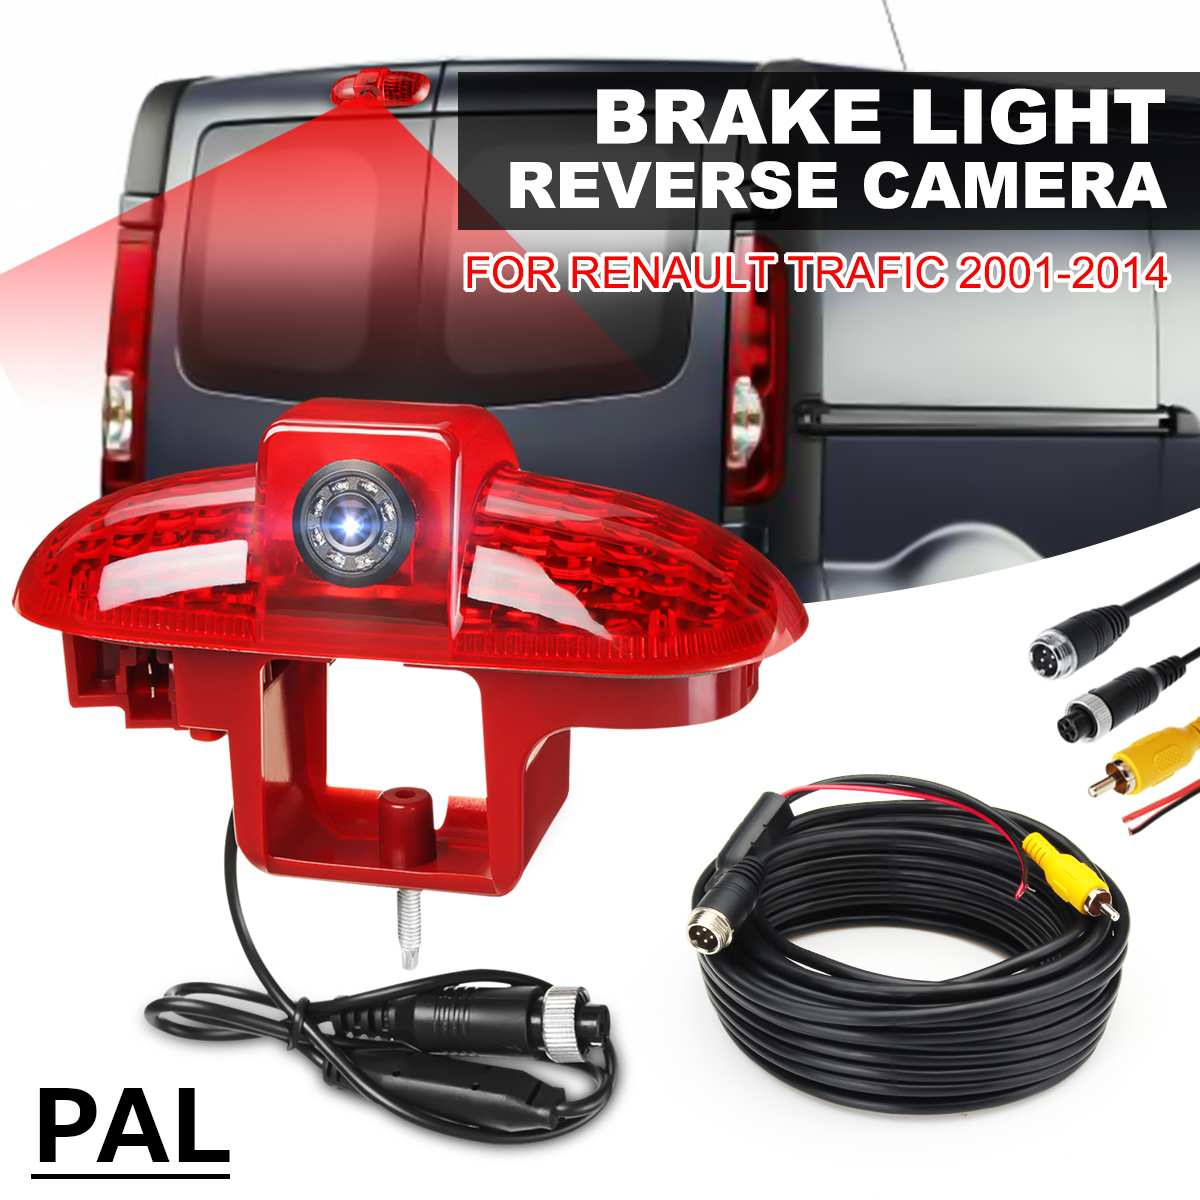 PAL Car Brake Led Light Lamp Reverse Rear View Backup Parking Night Vision Waterproof Camera For Renault Trafic 2001 - 2014